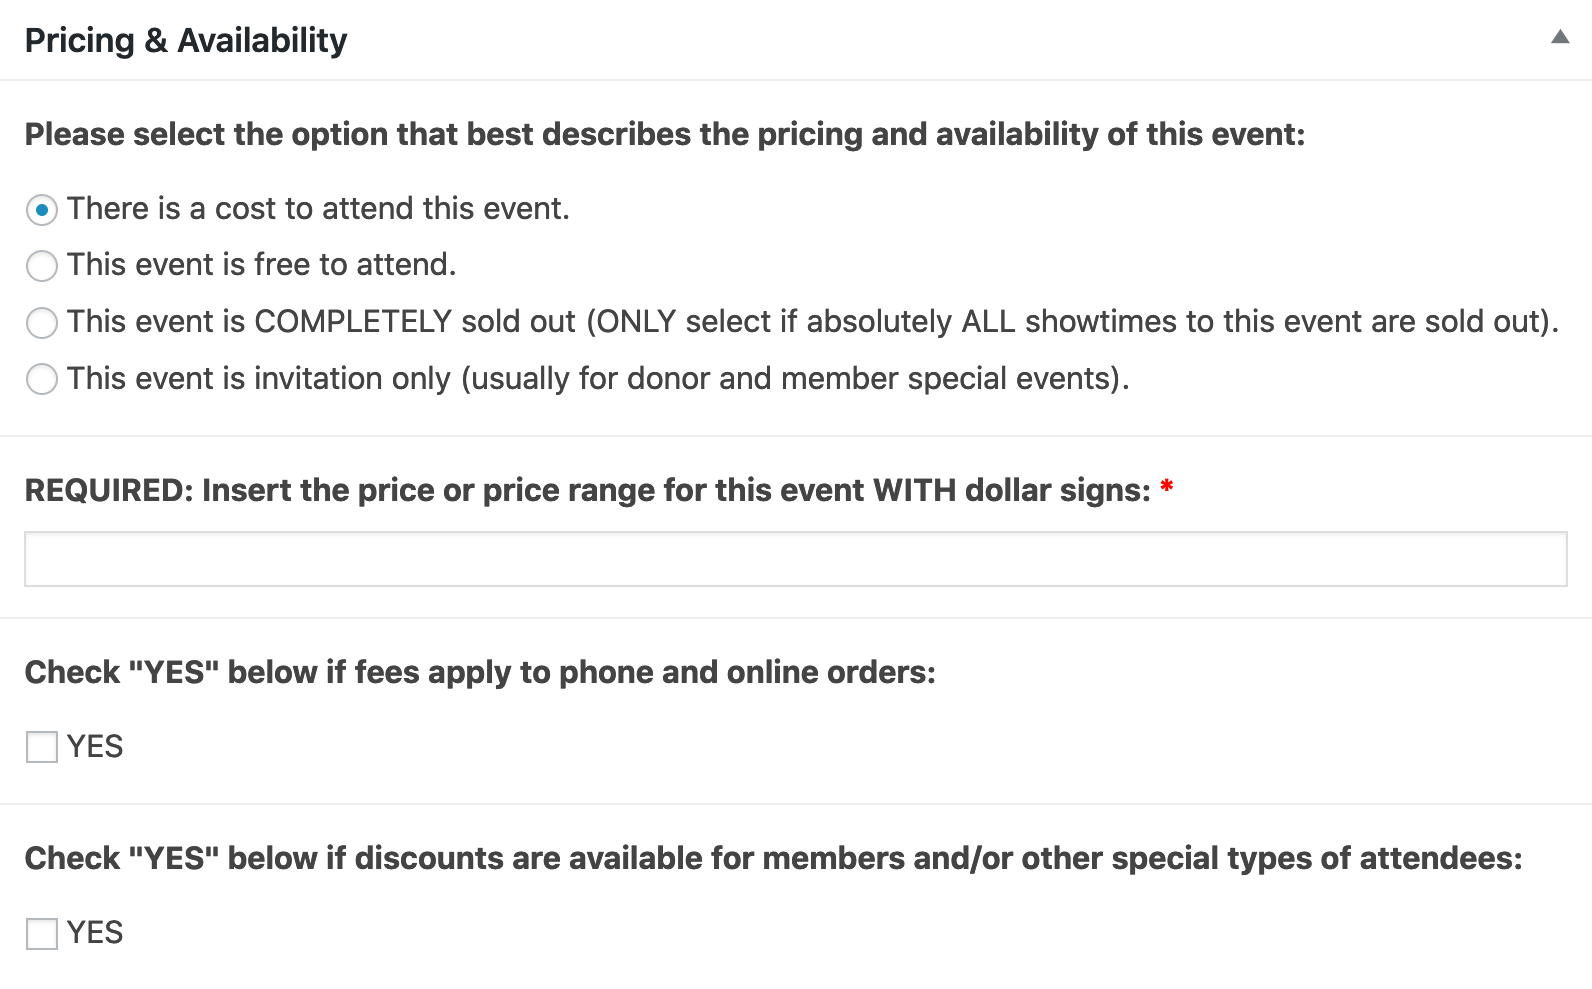 A WordPress editor box with 4 radio buttons, 1 text field & 2 checkboxes. Described in detail in the next paragraph.